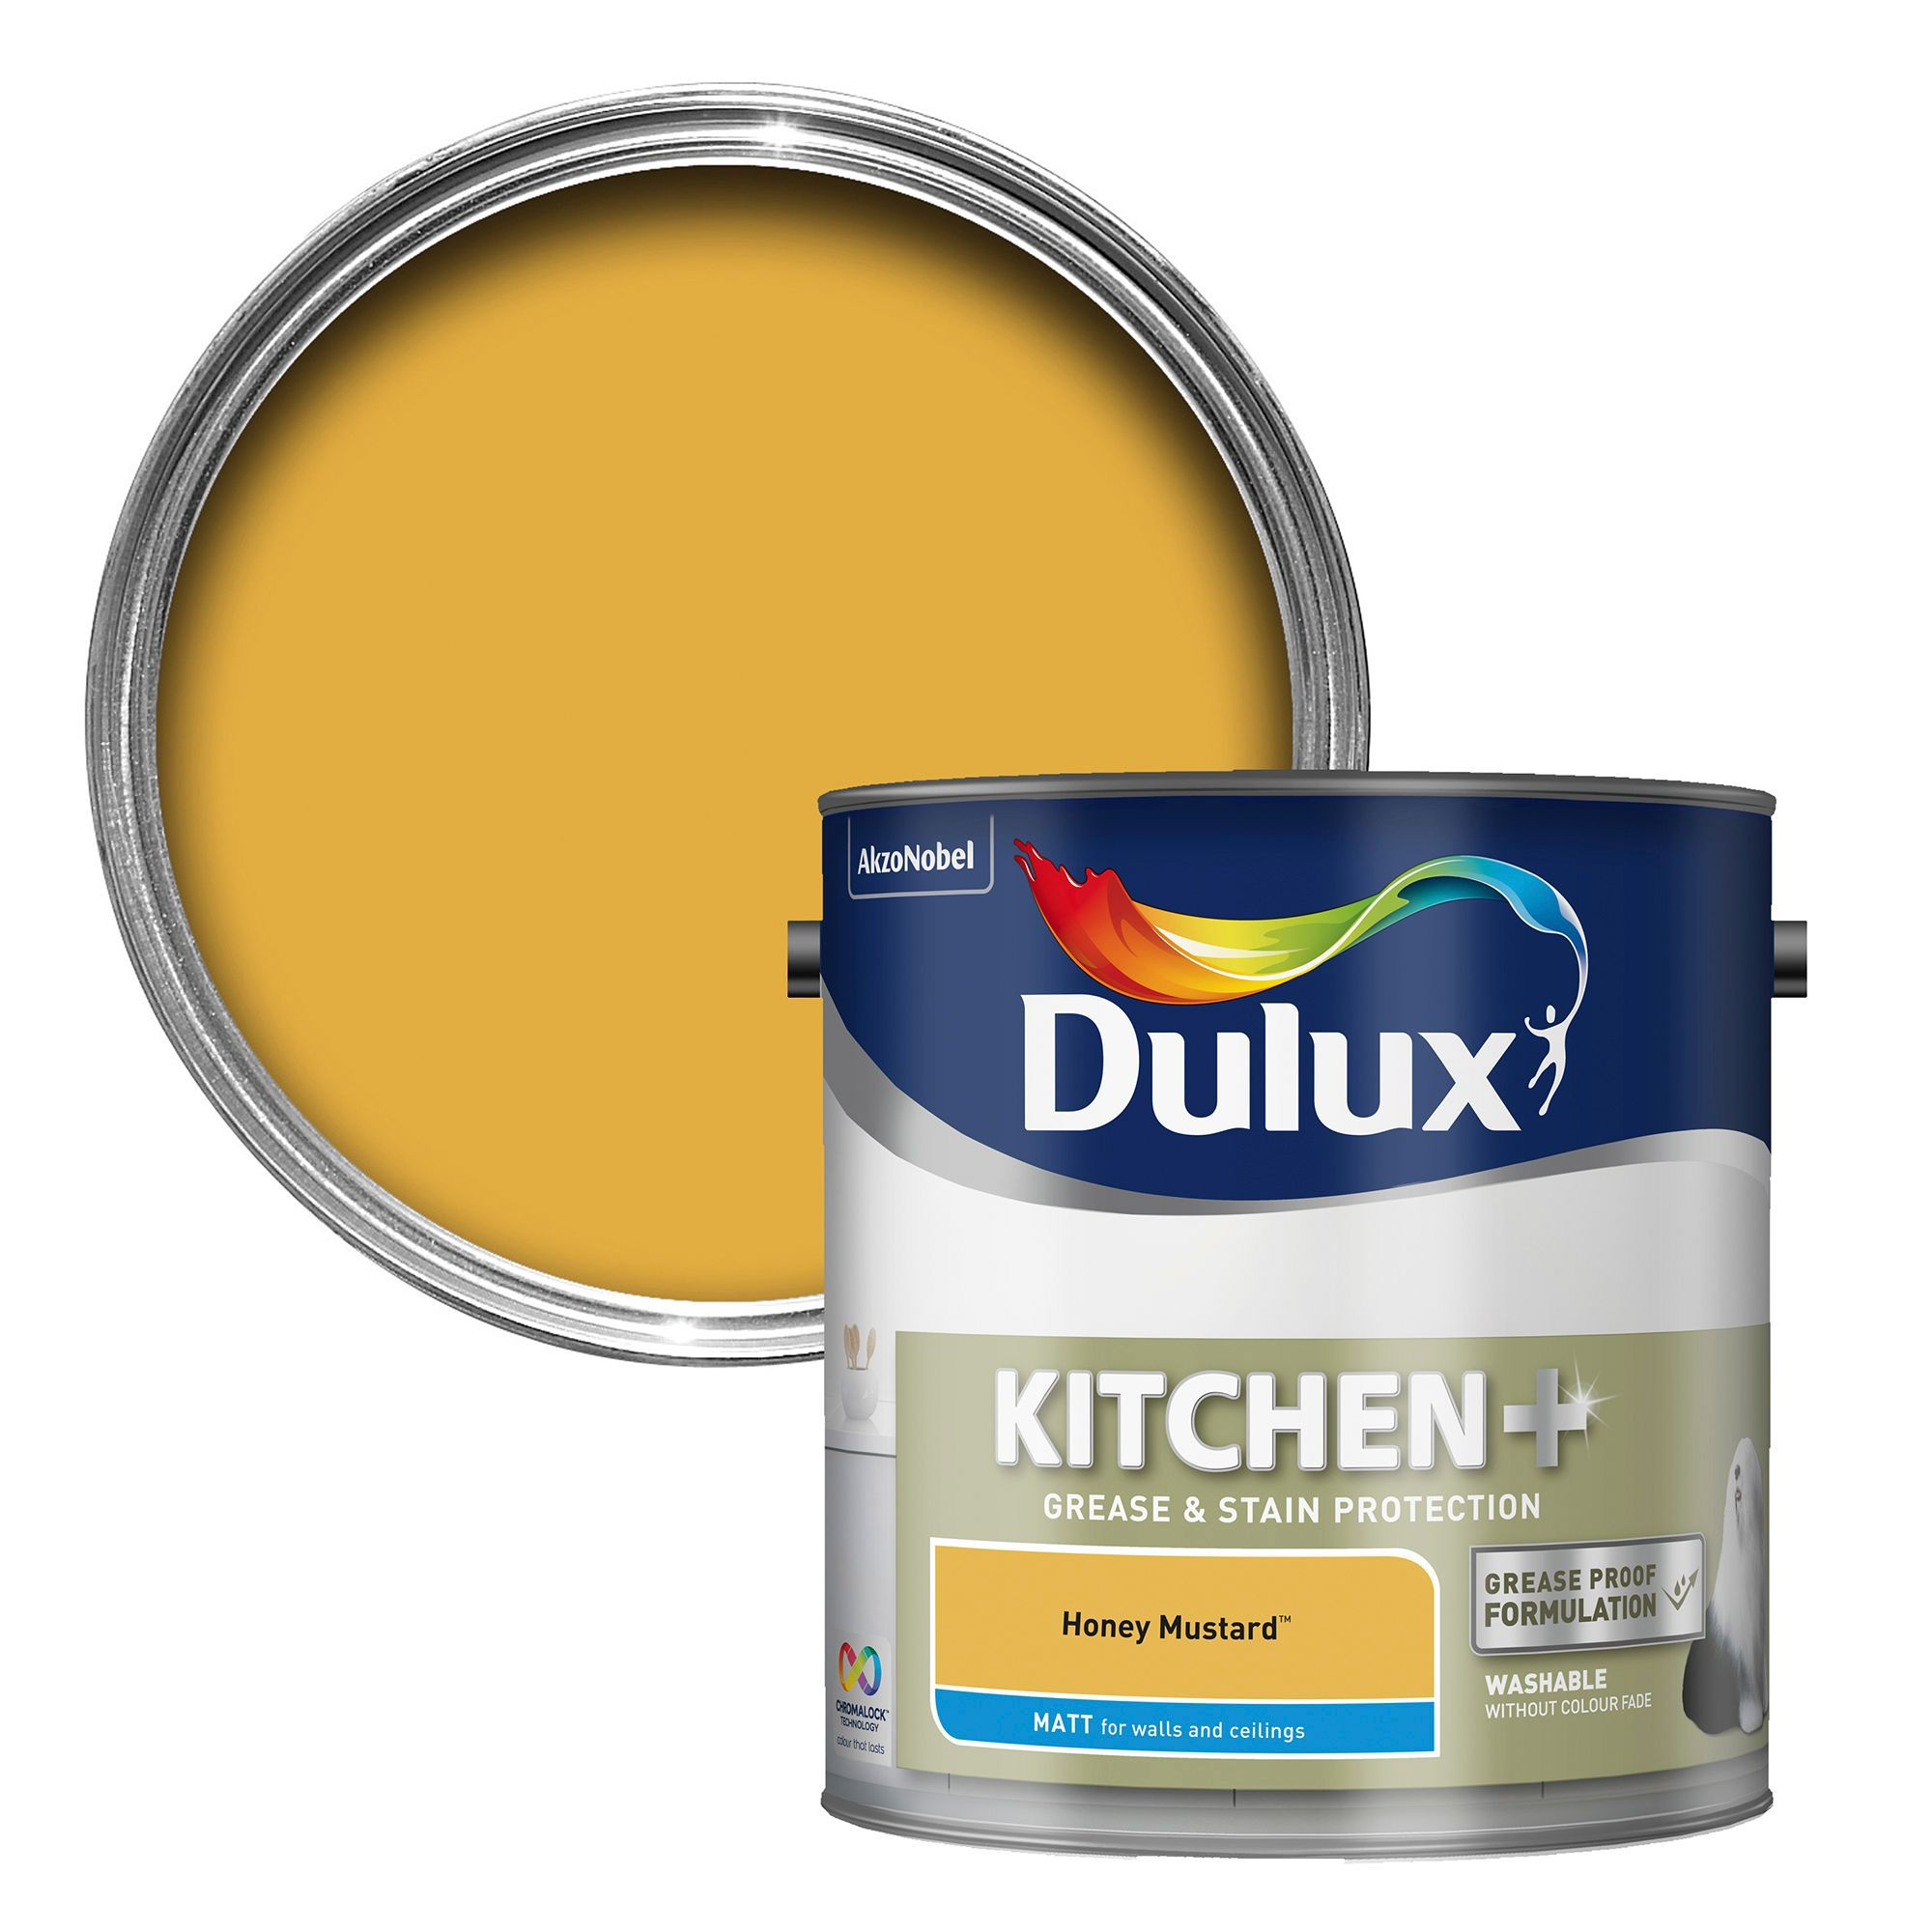 Dulux kitchen honey mustard matt emulsion paint 2 5l B q bathroom design service